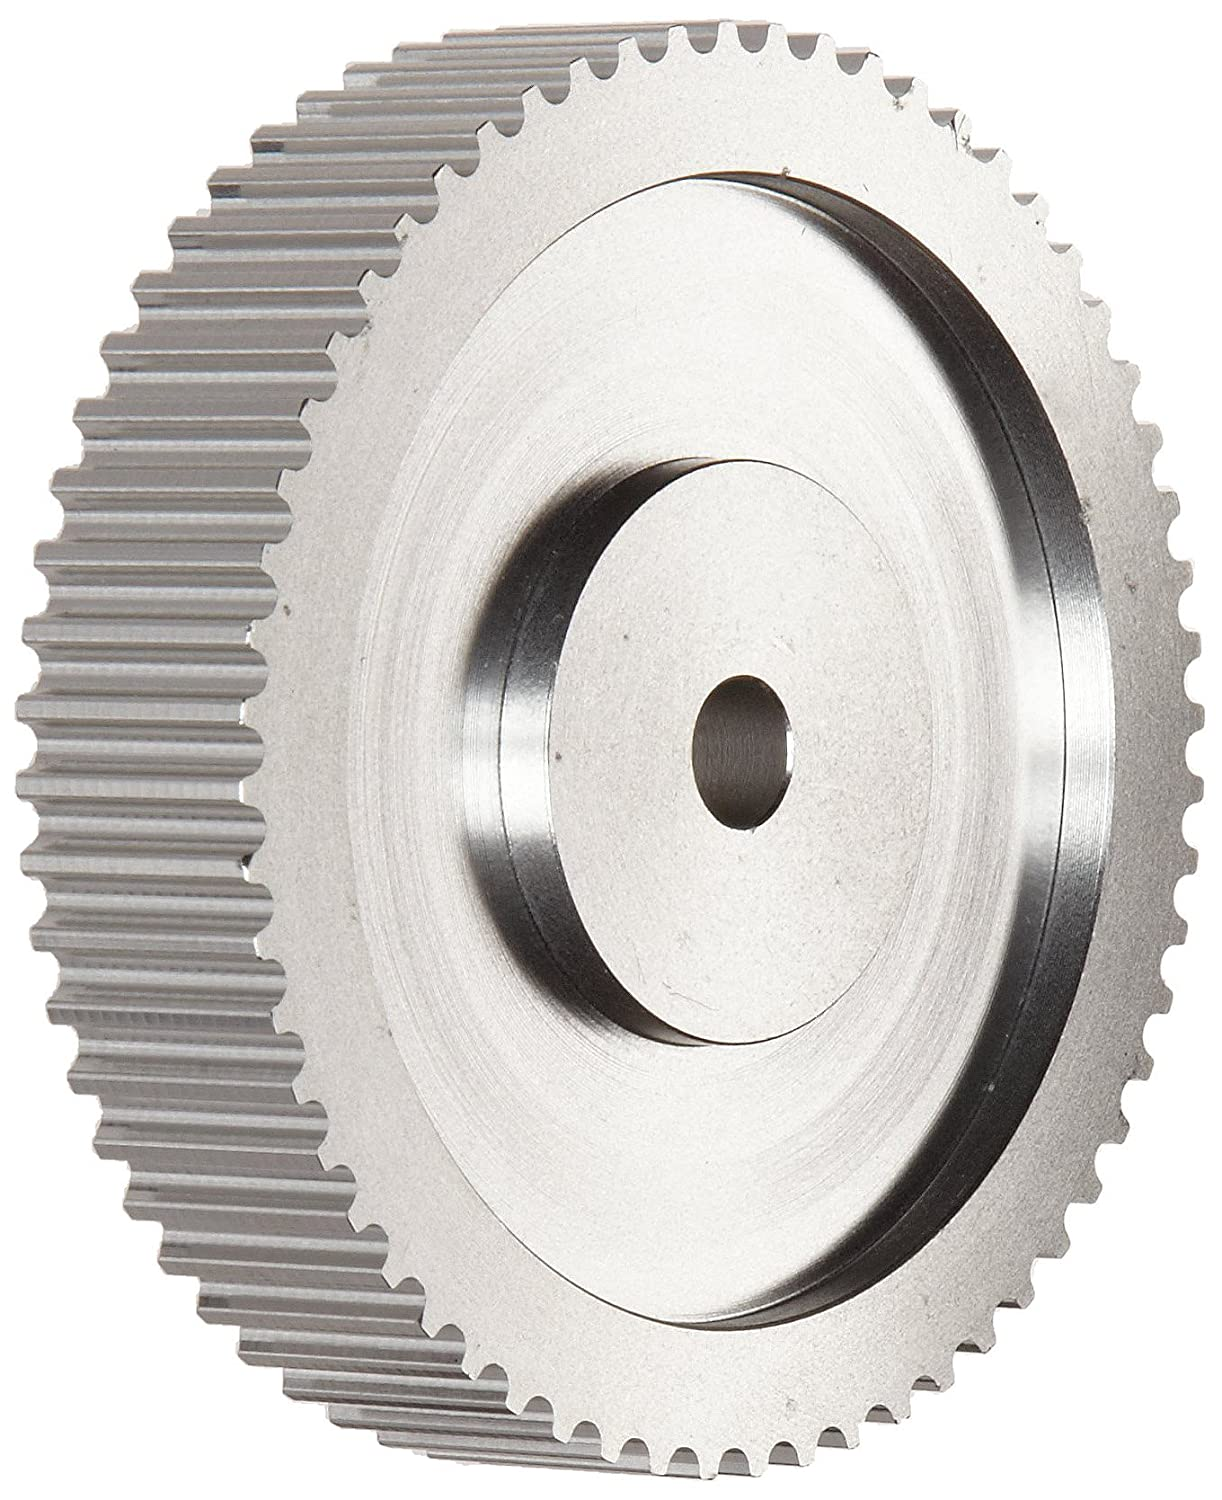 66T10/48 0 Ametric Metric Pitch Aluminum Timing Pulley, T 10mm Pitch, for a 50mm Wide Belt, 48 Teeth, 150.95 mm Outside Diameter, (Mfg Code 1-017)